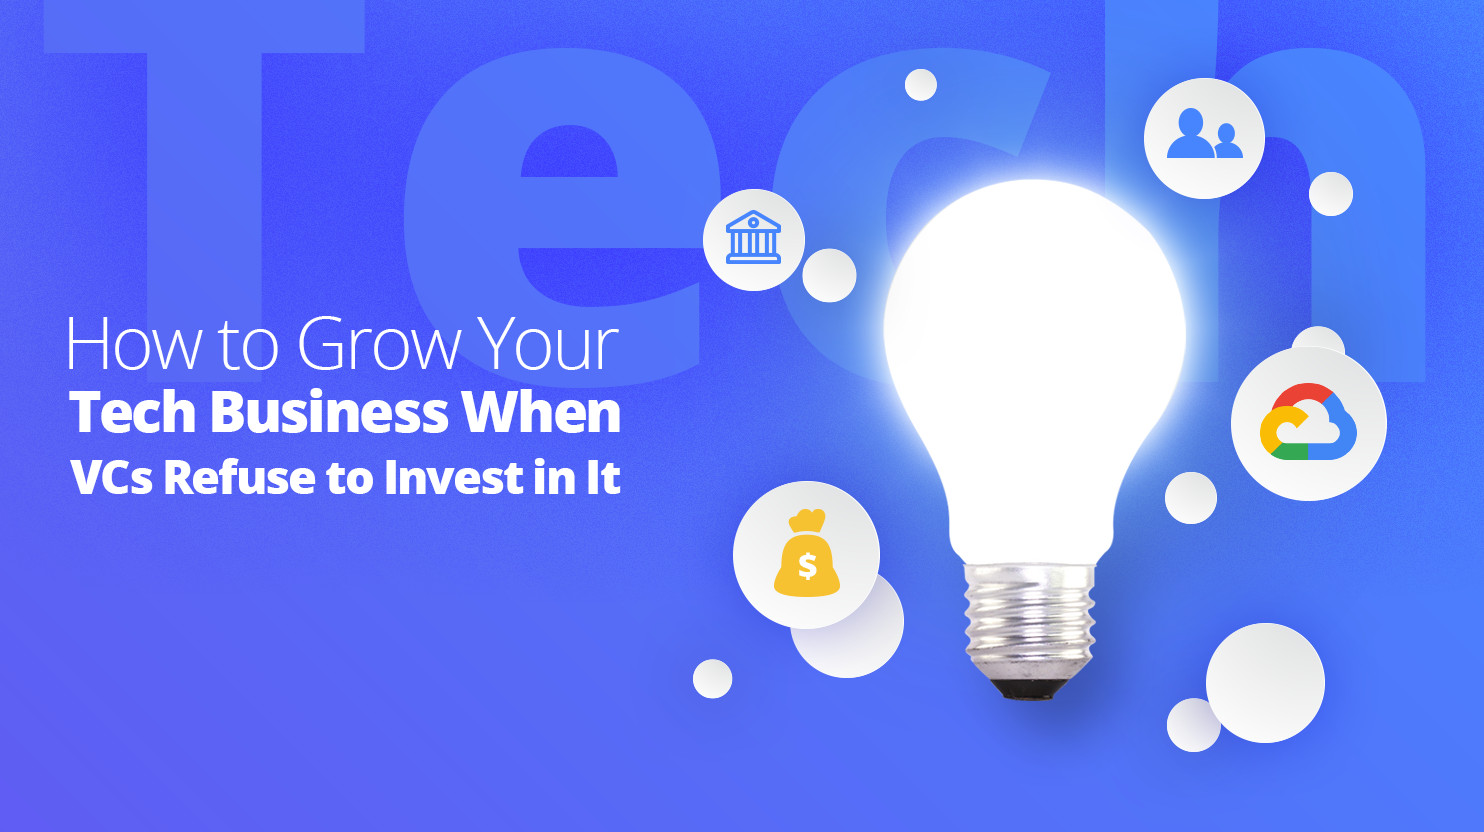 How to Grow Your Tech Business When VCs Refuse to Invest in It